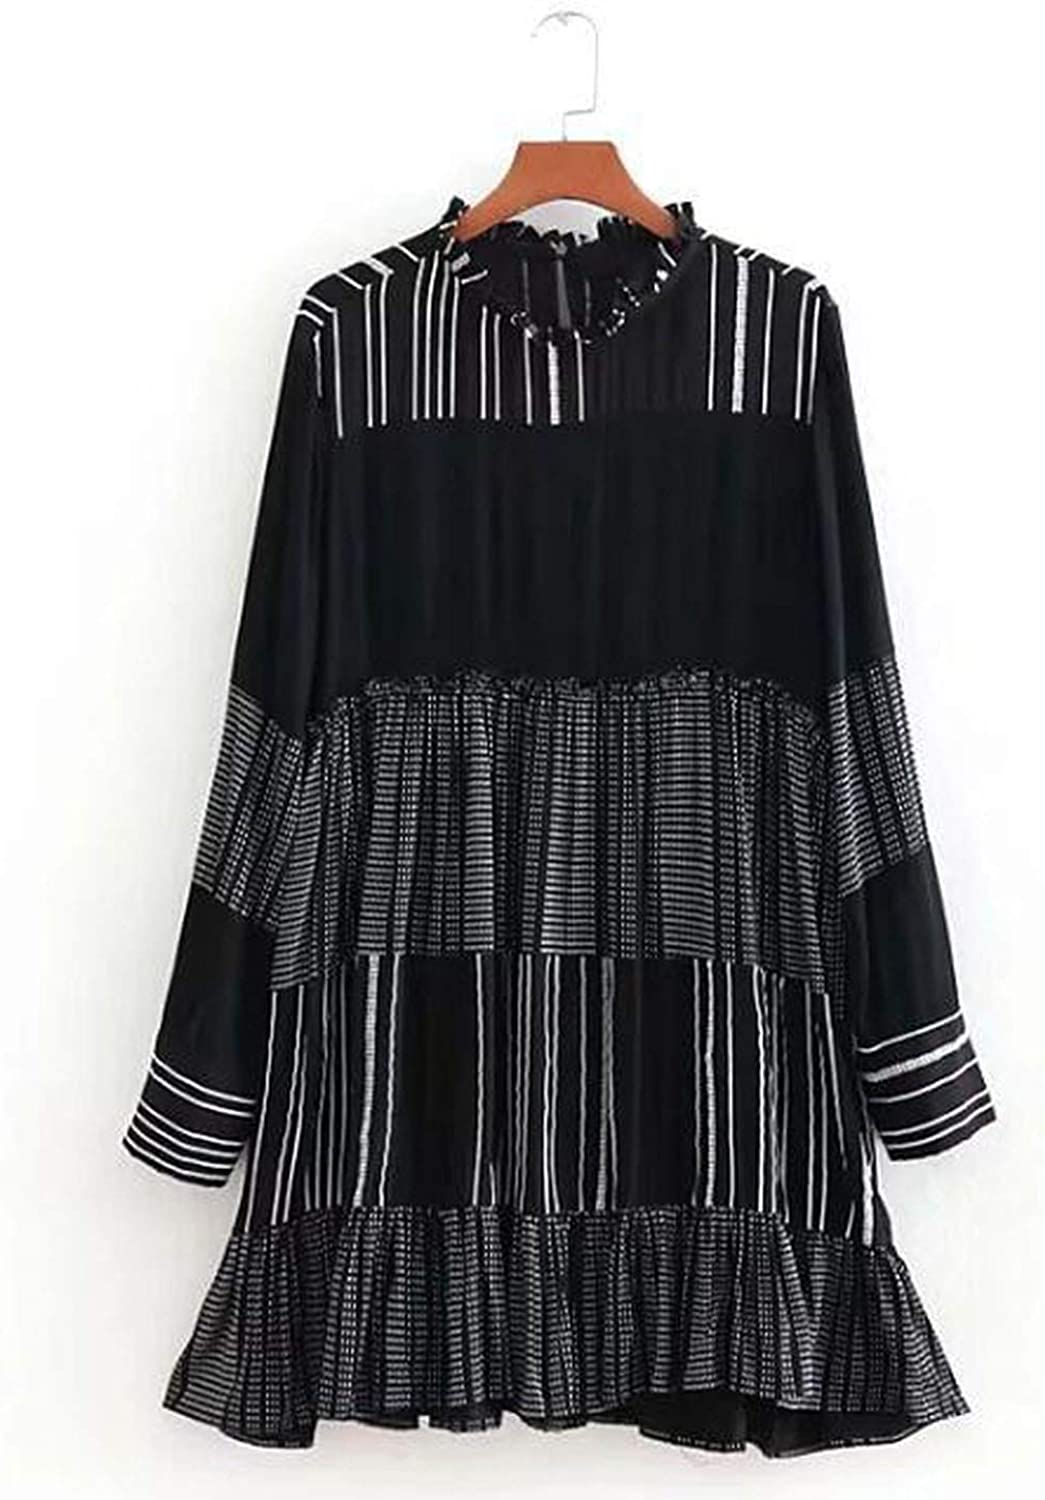 2018 Autumn Black White Hit color Long Sleeved Ruffled Collar Vintage Party Dress Umbrella